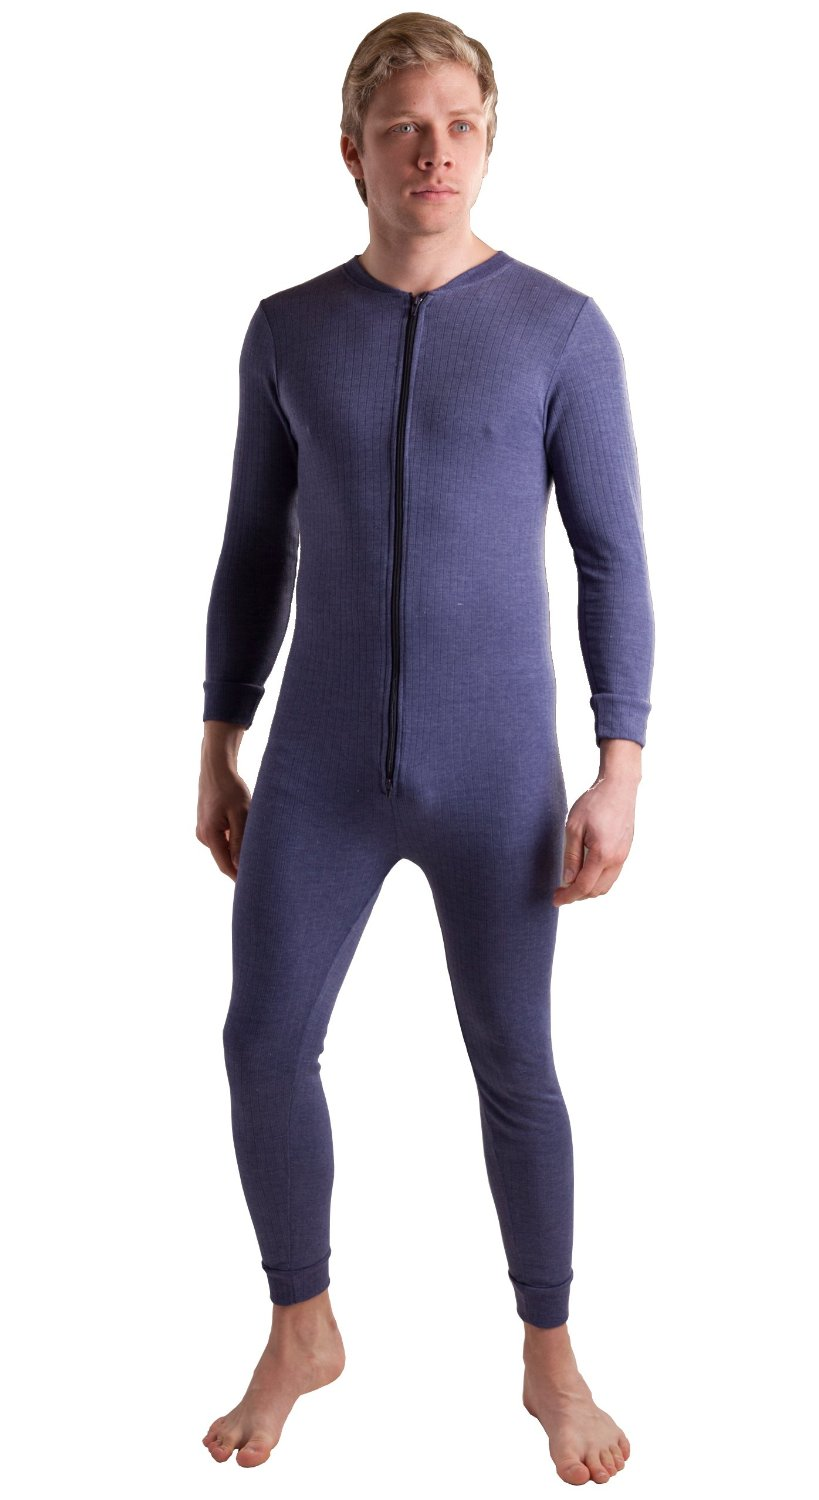 OCTAVE® 3 PACK : Mens All in One Thermal Union Suit with Zipped ...